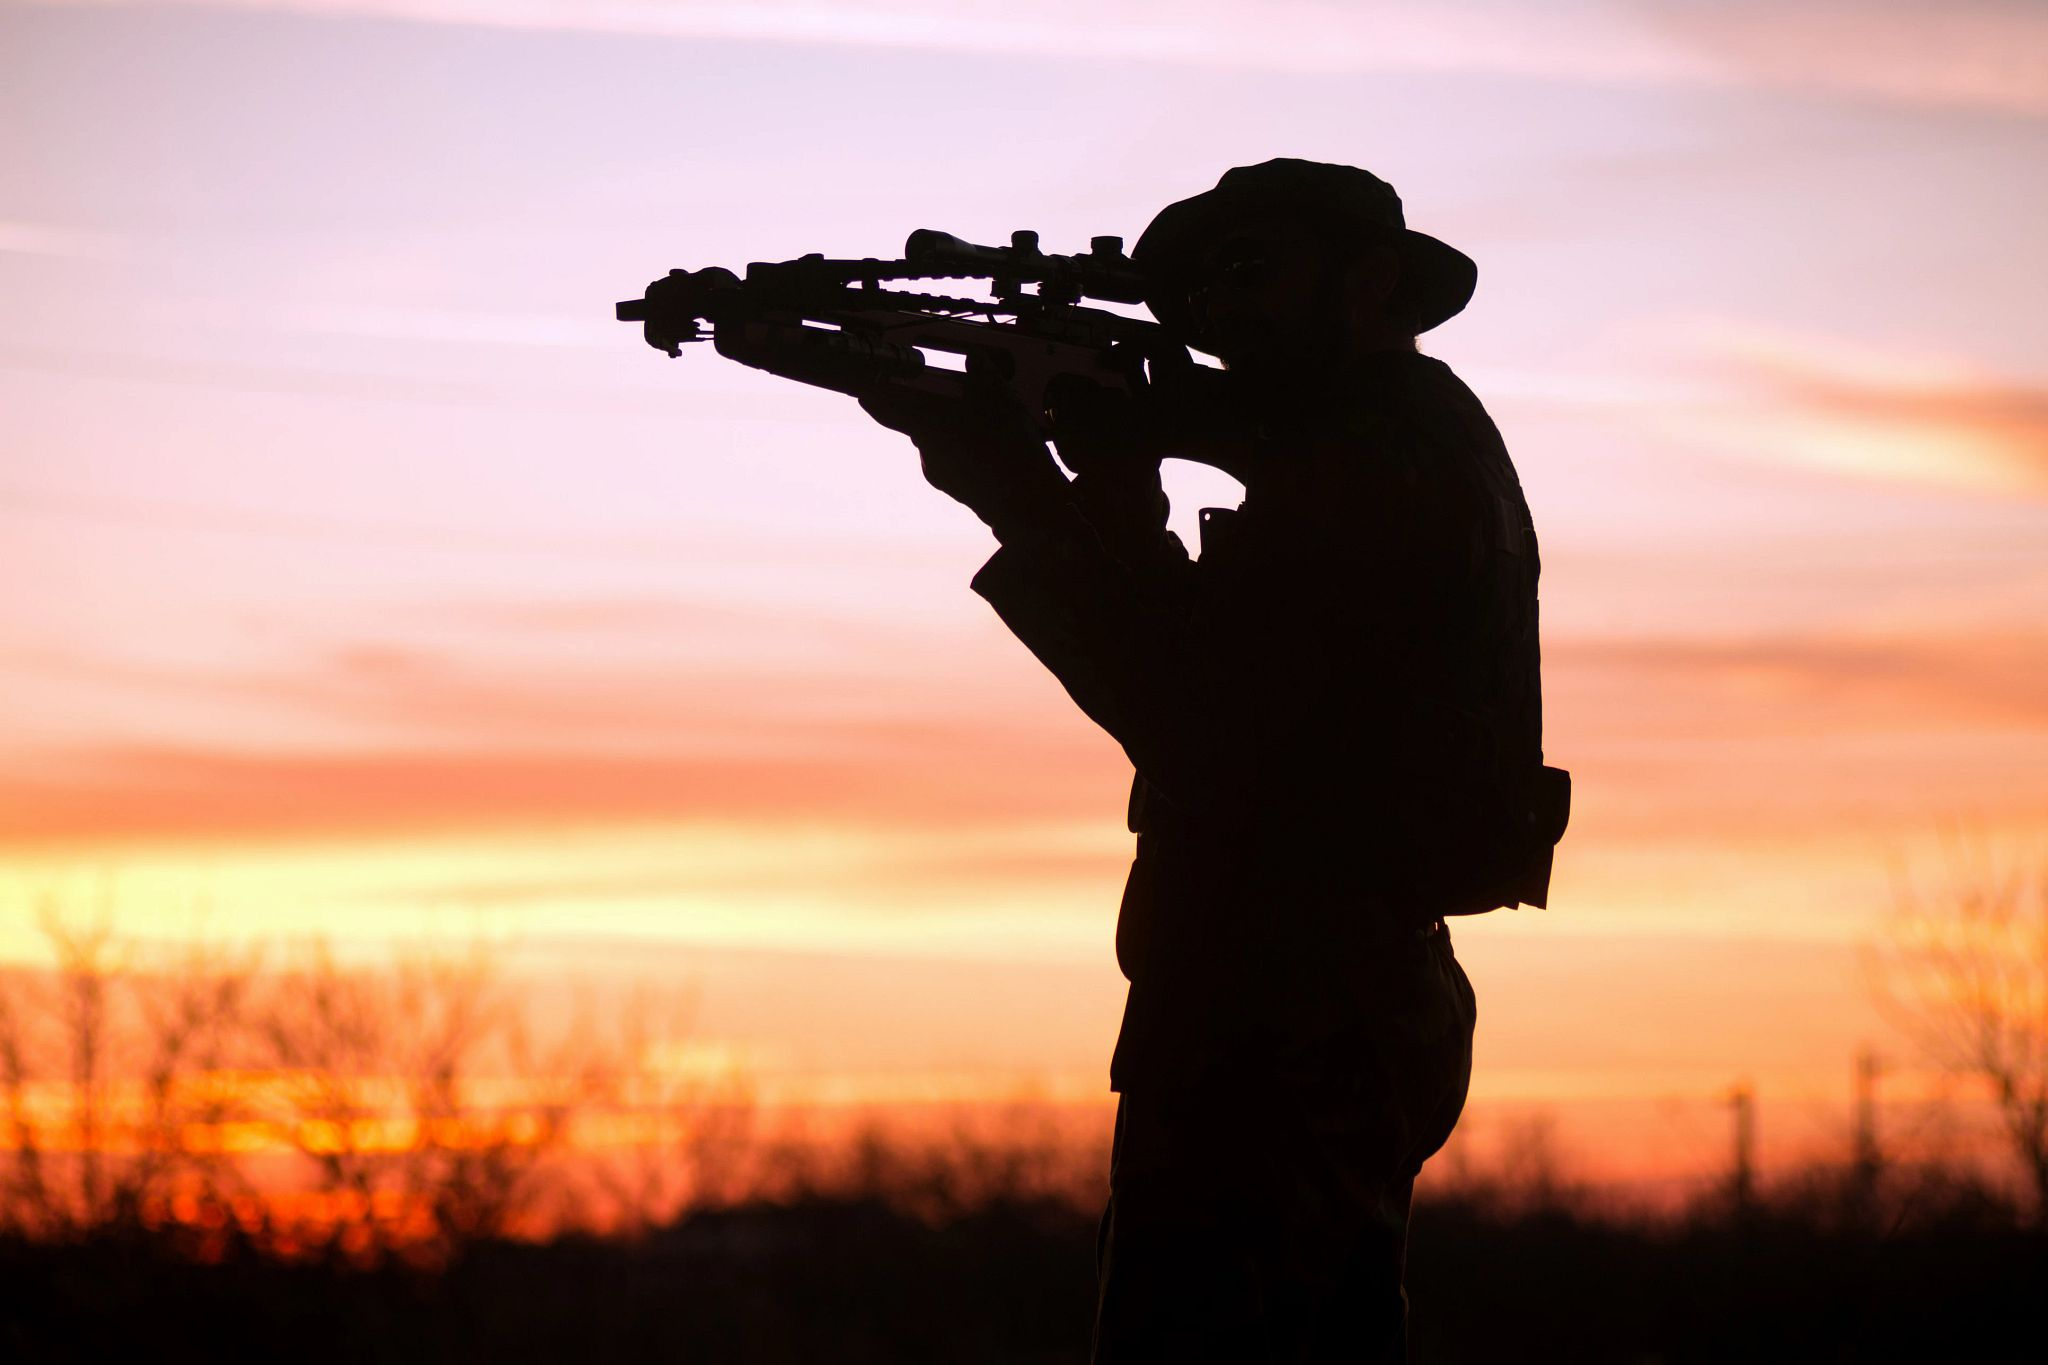 An image of a archer's silhouette at sunset.